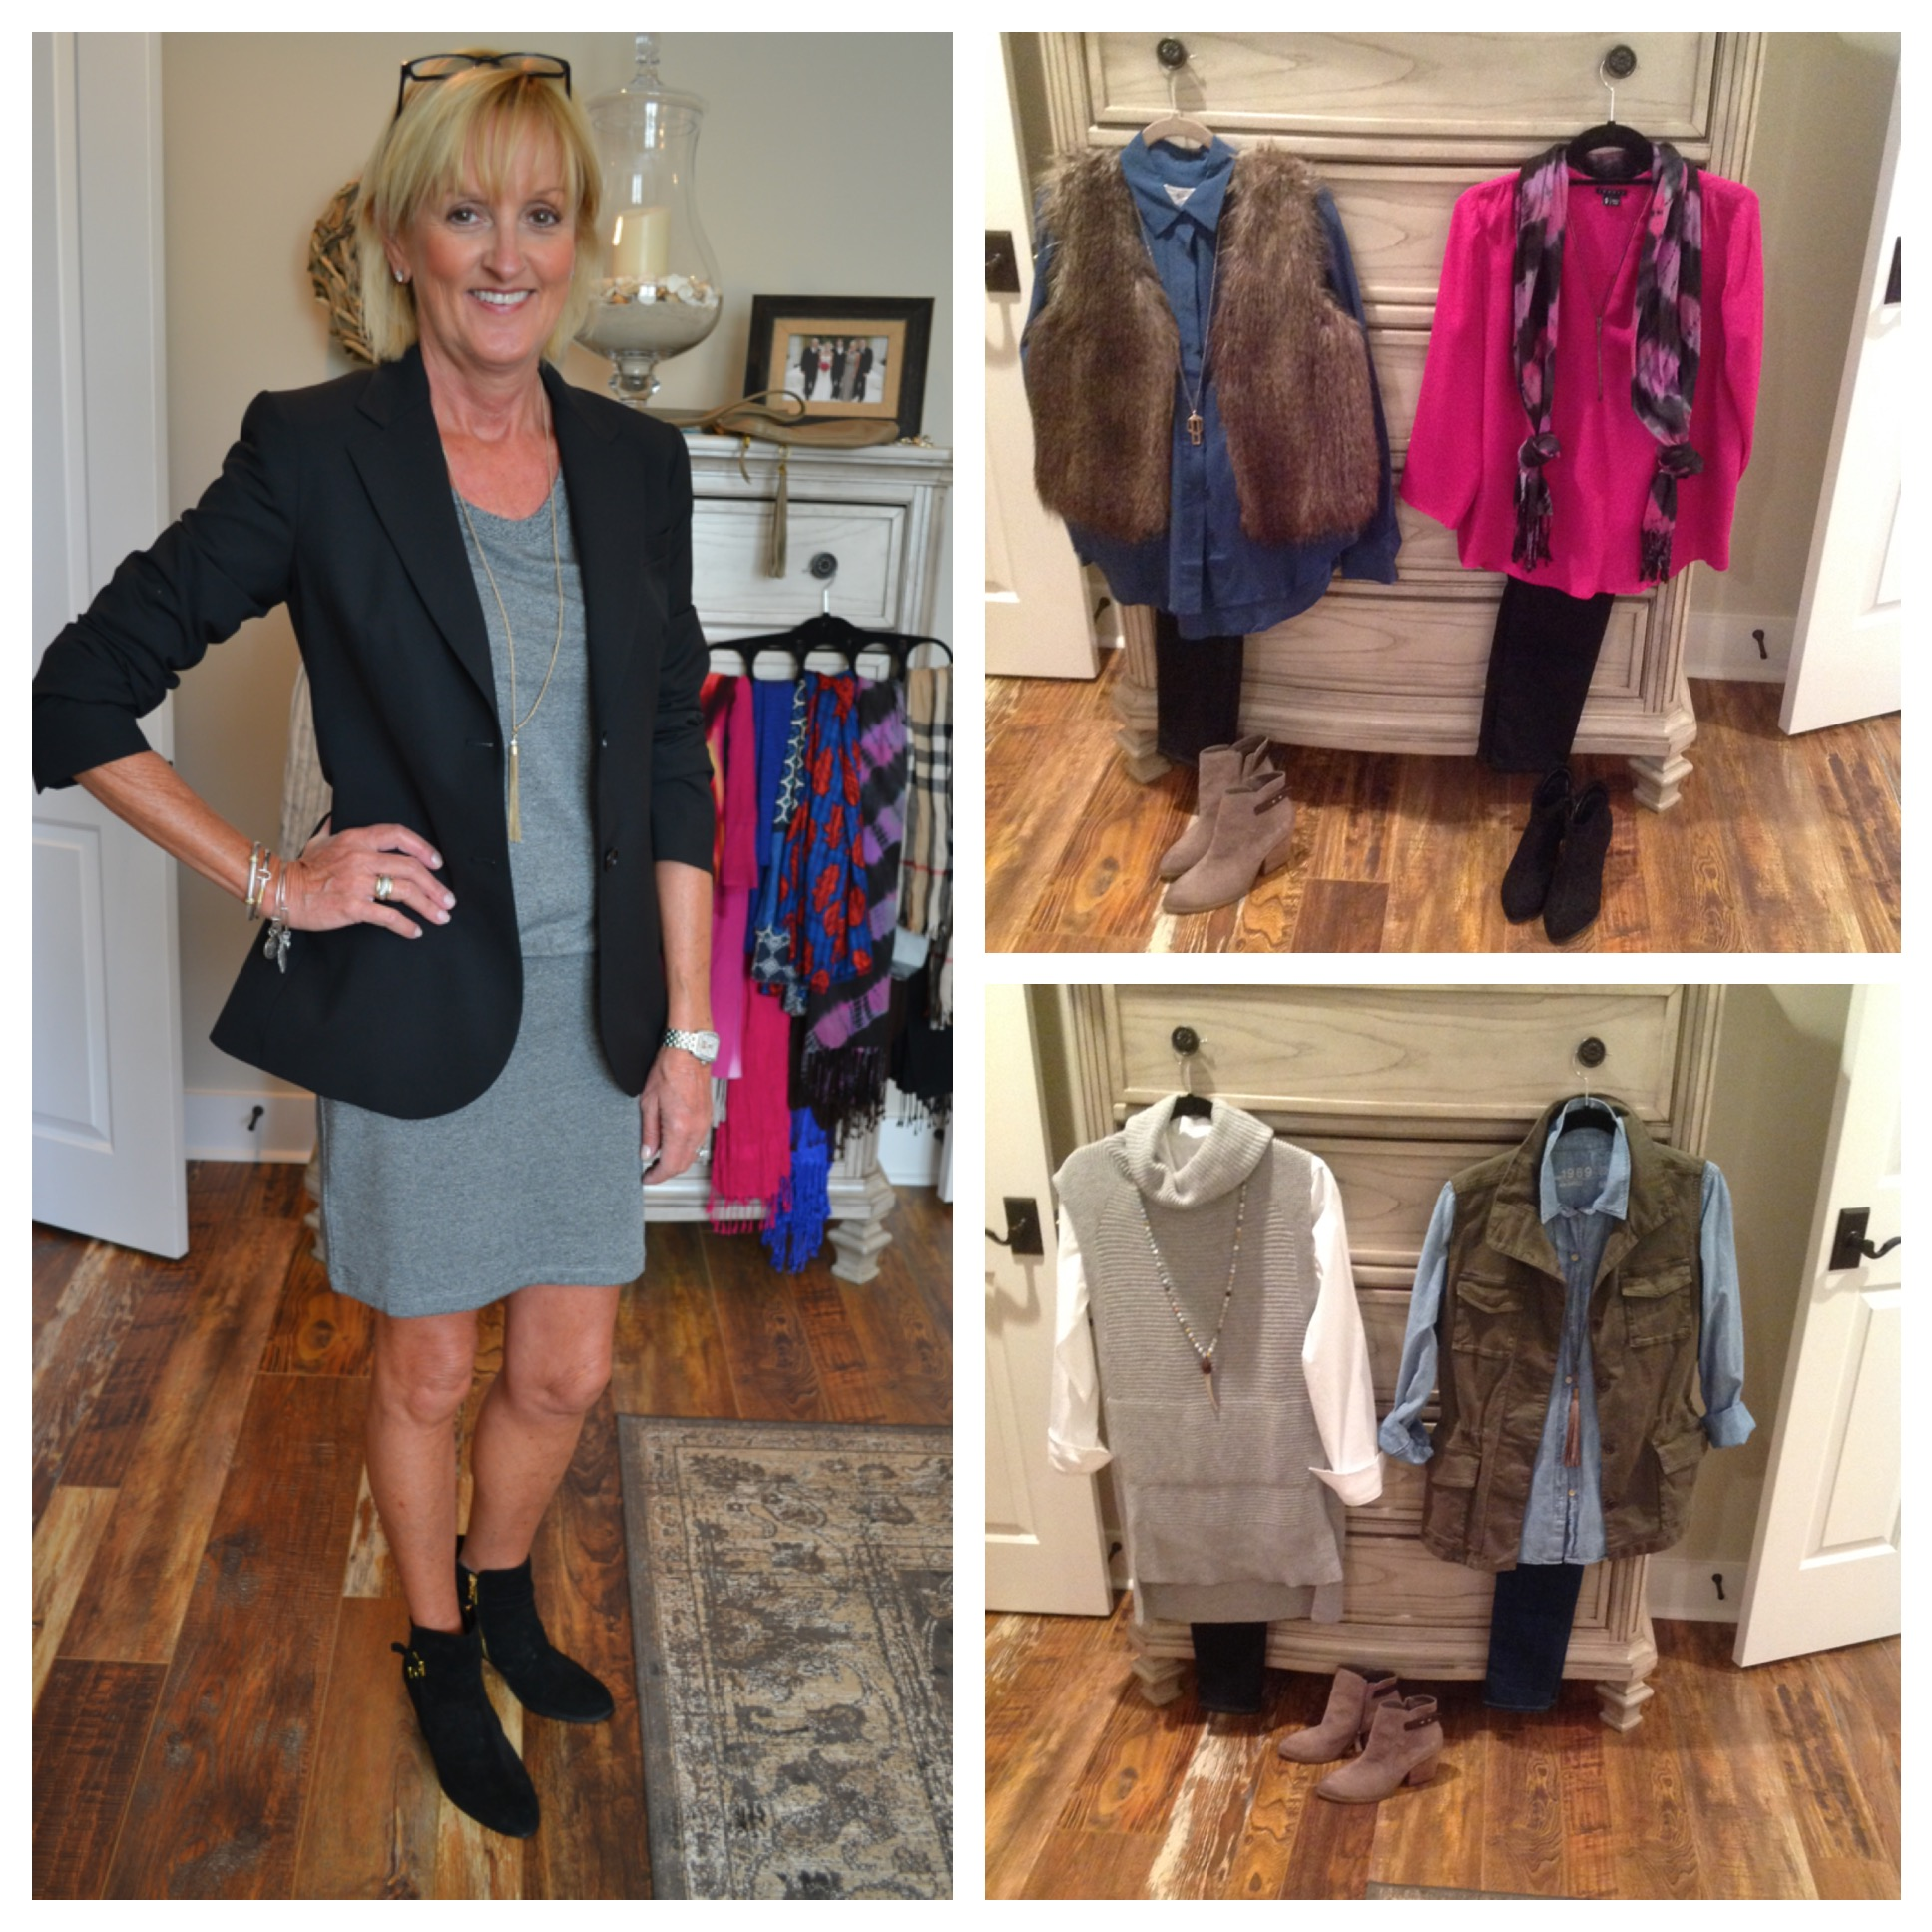 Cute Penney and outfits I styled.